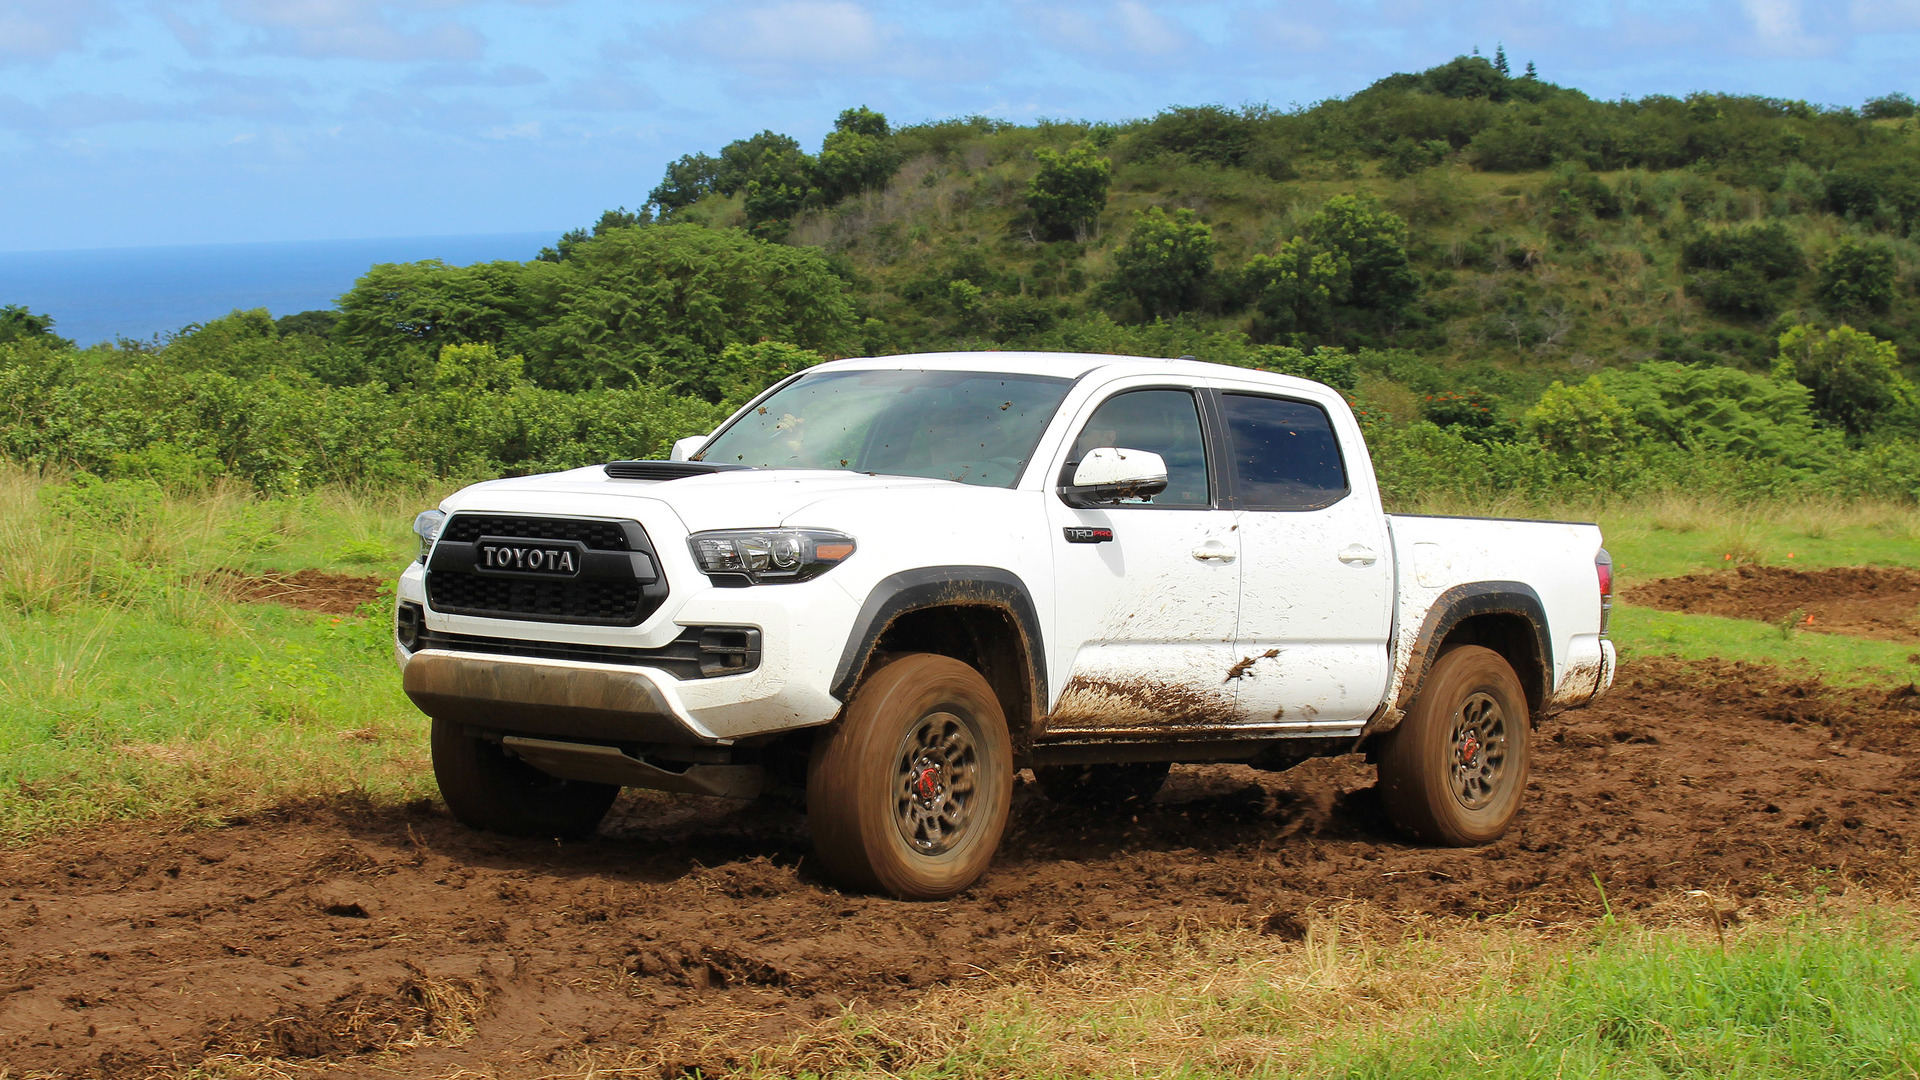 Hybrid Pickup Trucks >> 2017 Toyota Tacoma TRD Pro First Drive: No pavement, no problem